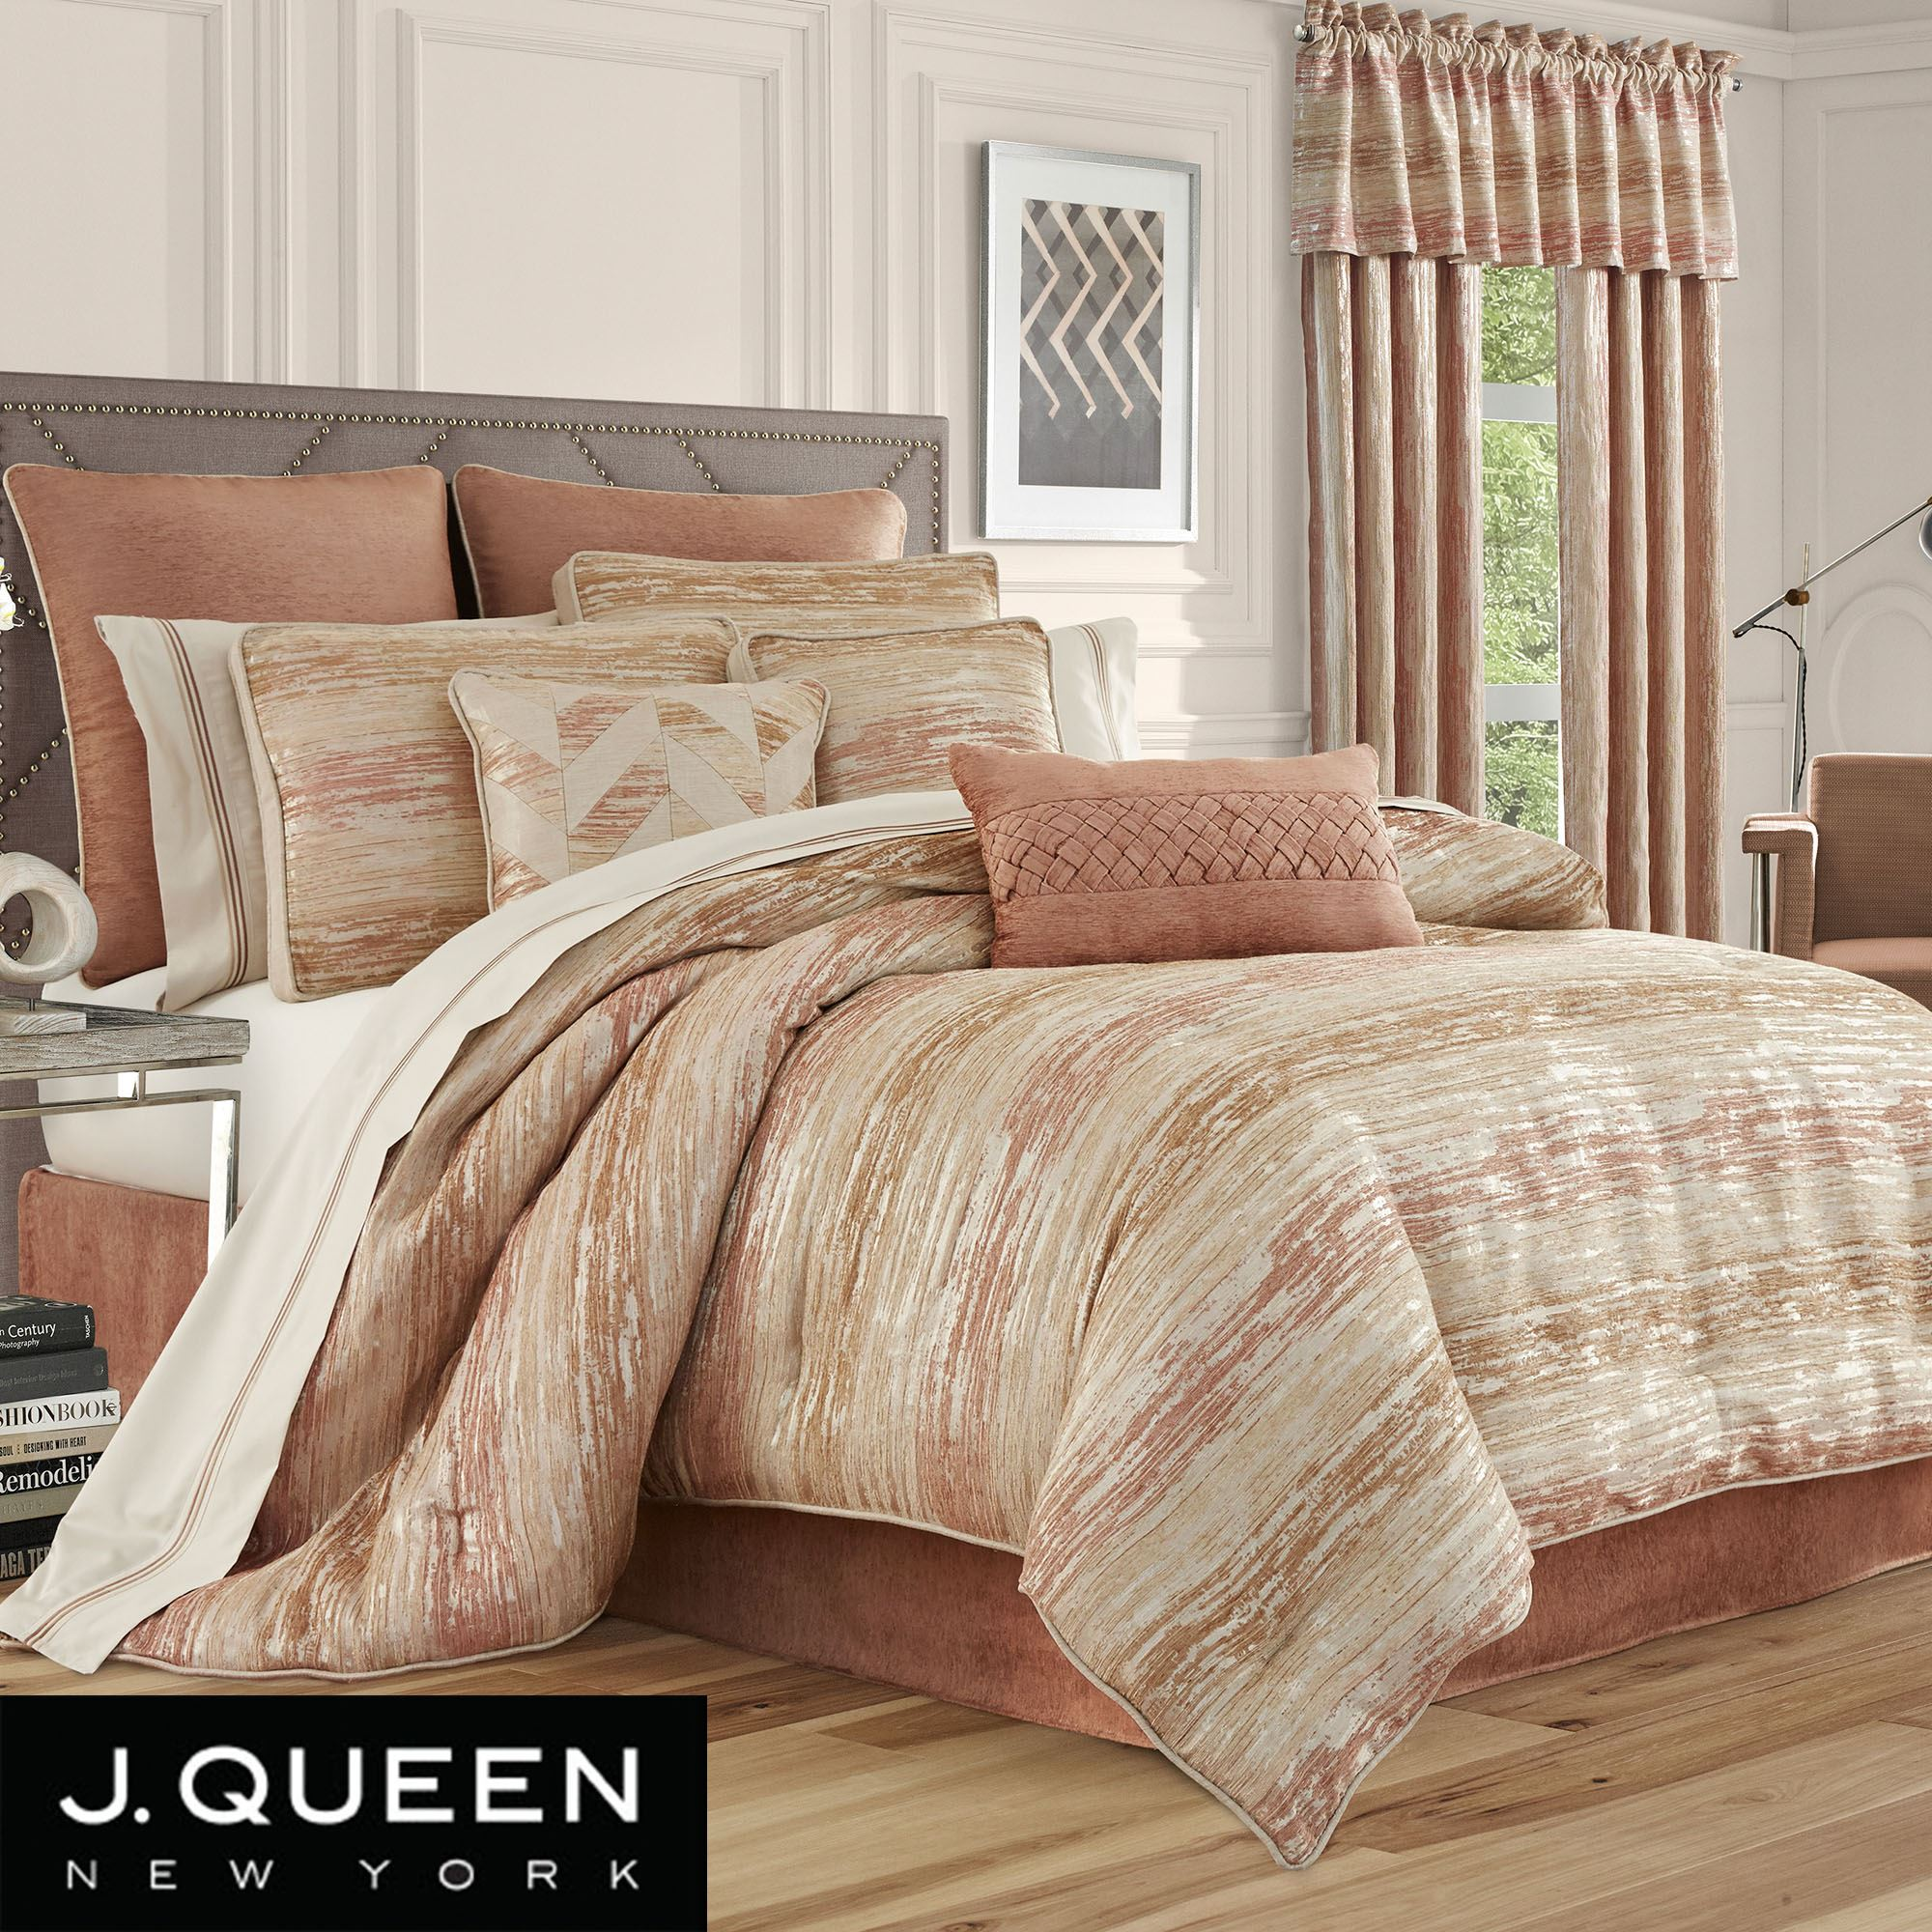 Sunrise Coral Comforter Bedding By J Queen New York